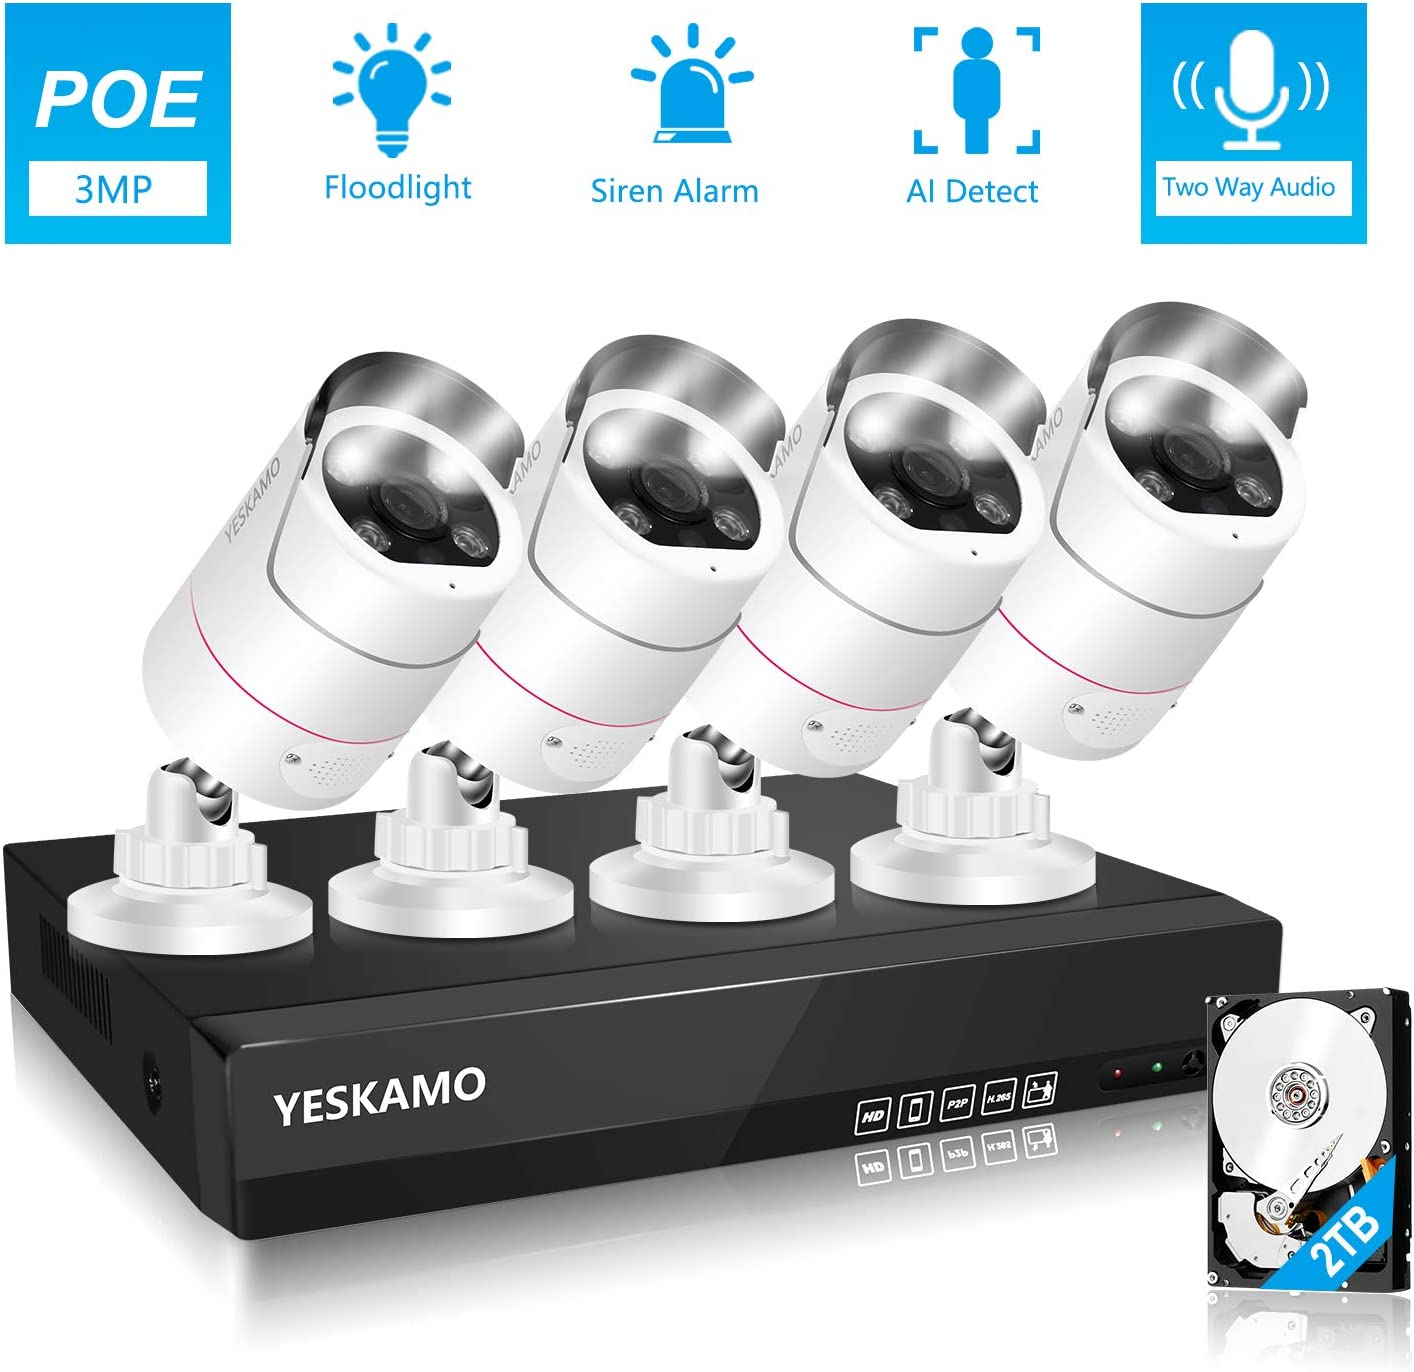 YESKAMO PoE Outdoor Home Security Camera System [Floodlight & 2 Way Audio] 5K 8ch NVR 4pcs 3MP Spotlight IP Cameras with 2TB Hard Drive, Color Night Vision,Siren Alarm,AI Human Detection